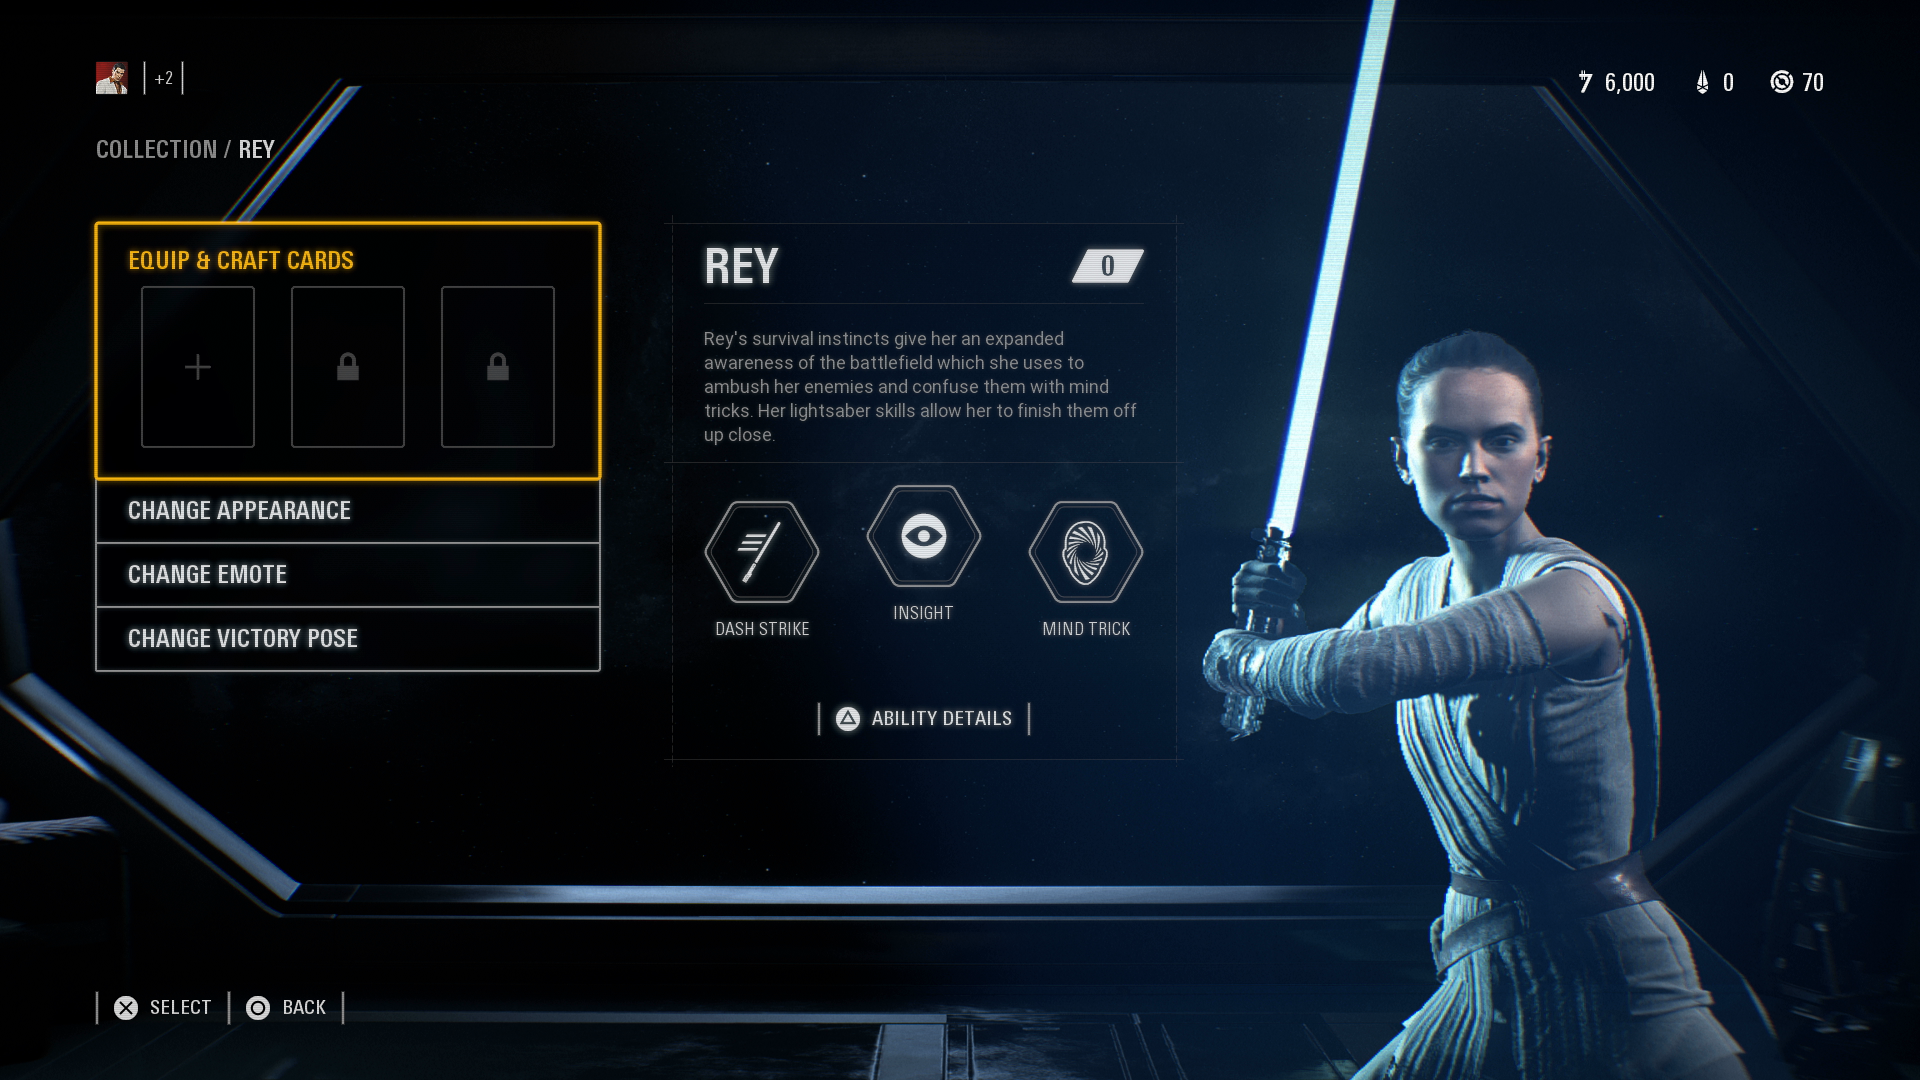 Star Wars Battlefront 2 microtransactions back in a